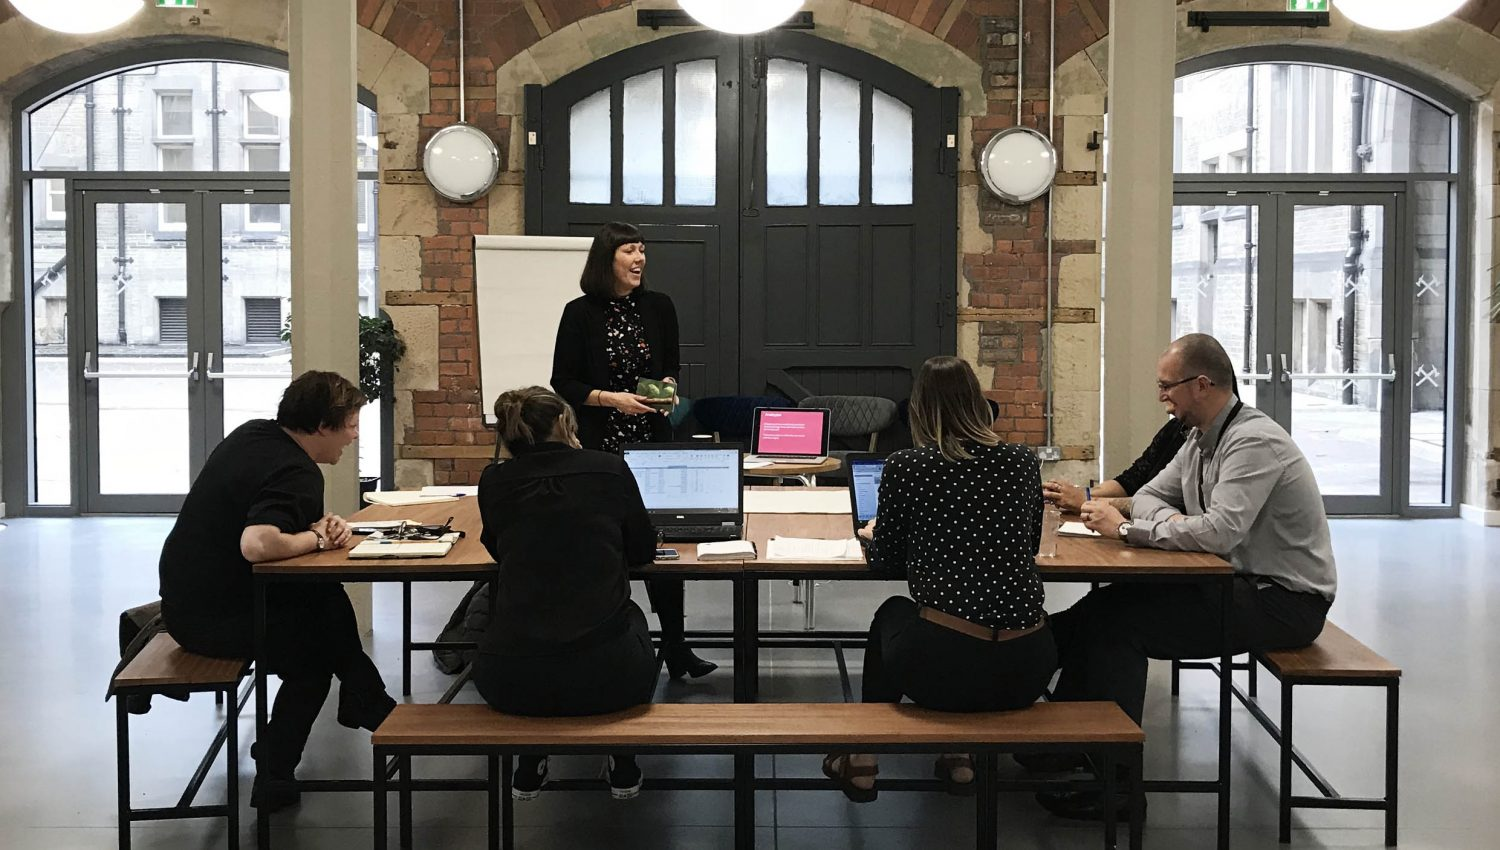 Branding workshop for Middlesbrough Town Hall, an arts, culture and music venue by Altogether Creative.